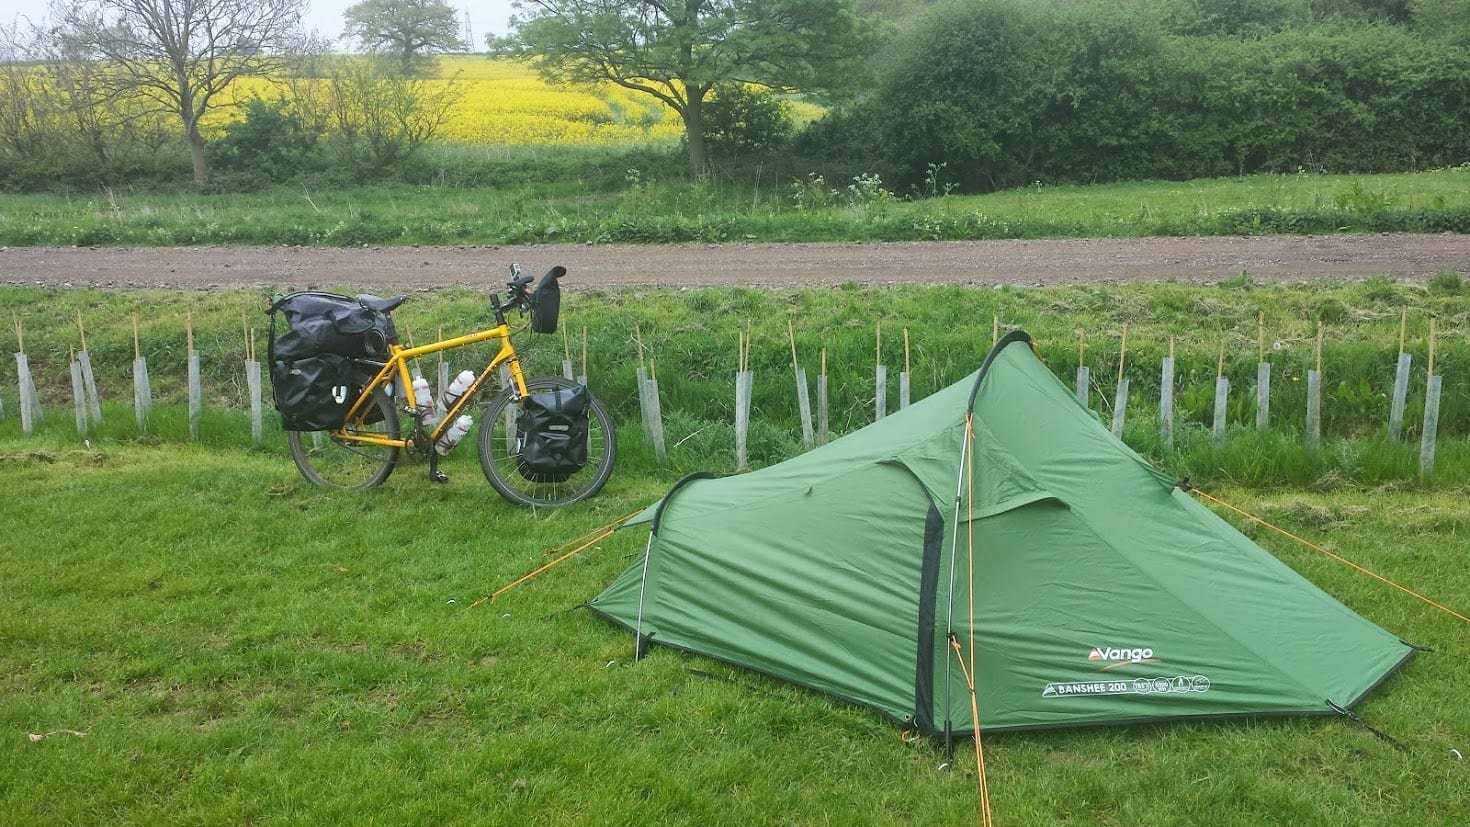 Vango Banshee tent for bike touring